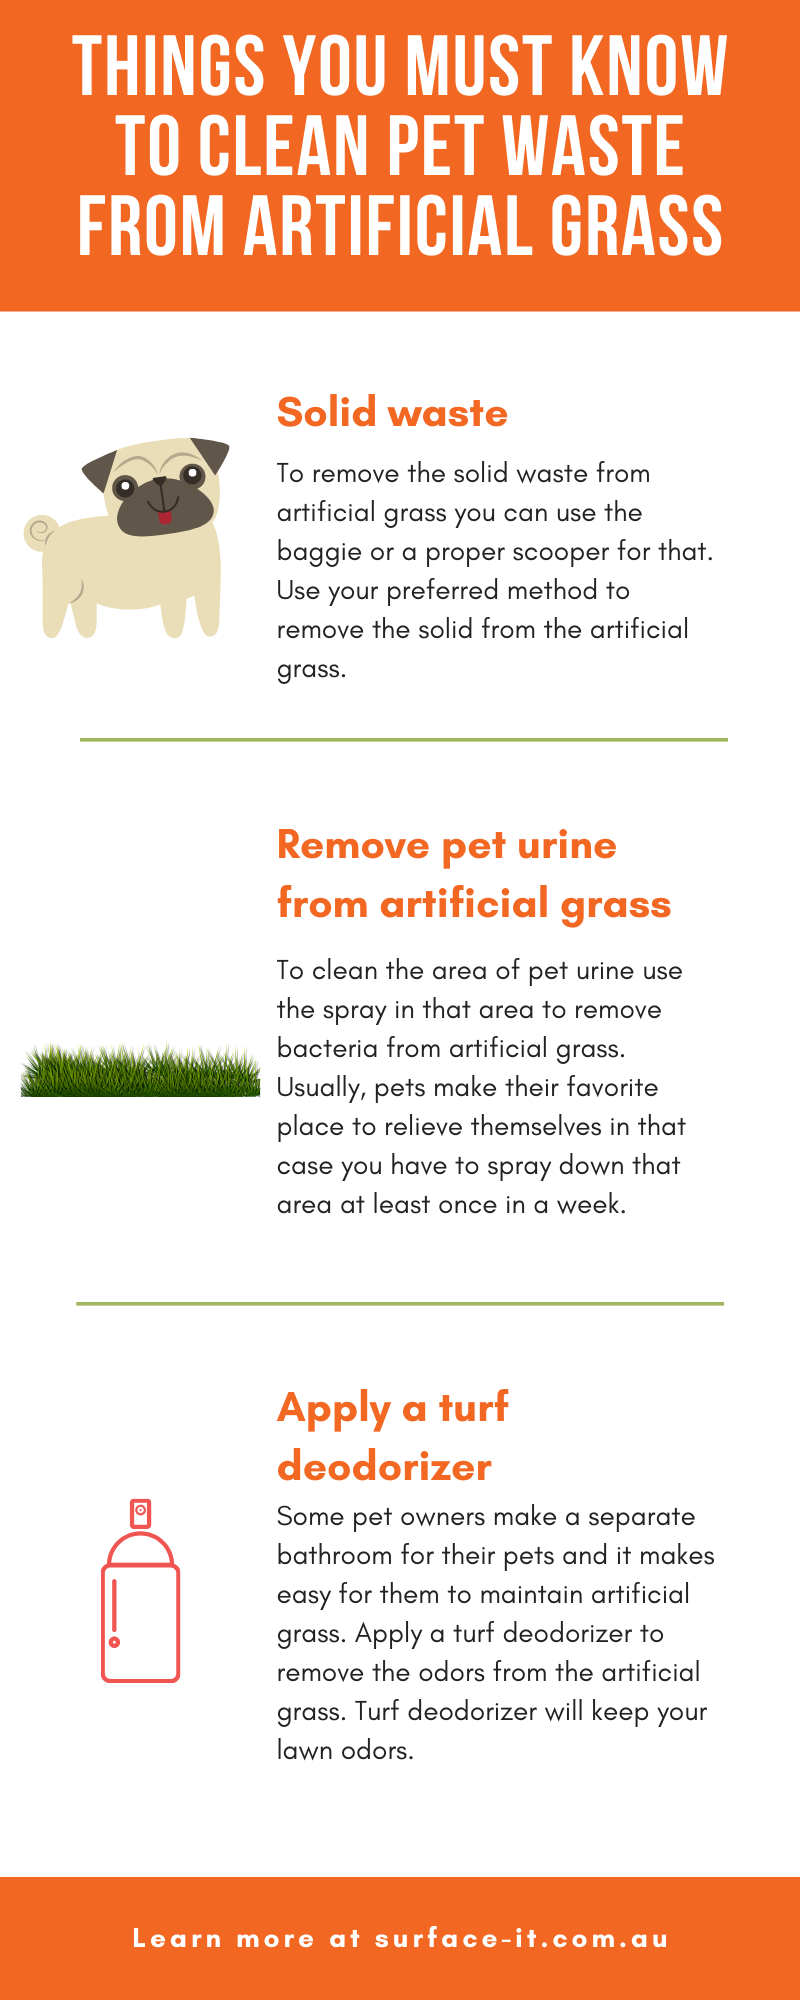 Things you must know toclean pet waste from artificial grass